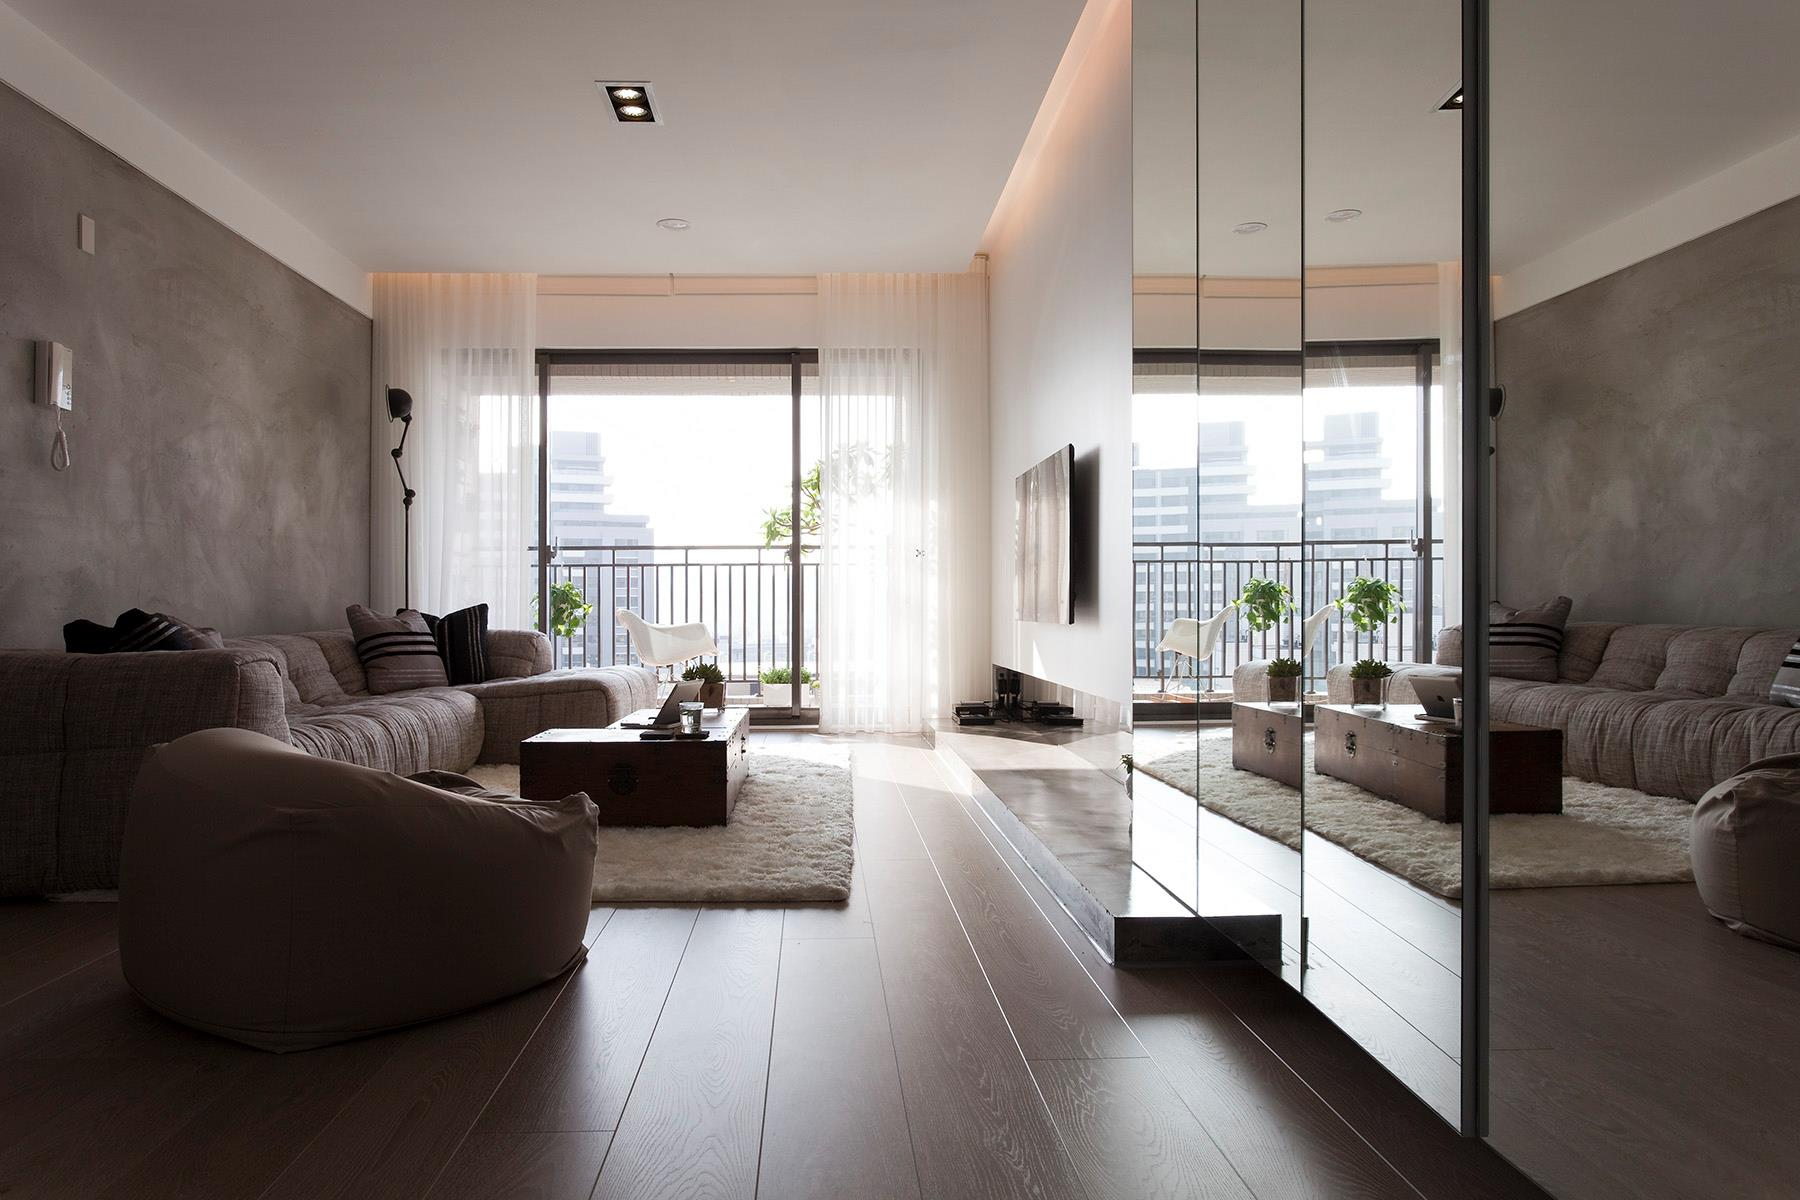 http://mat2.materialicious.com/images/contemporary-apartment-in-taiwan-by-fertility-design-o.jpg